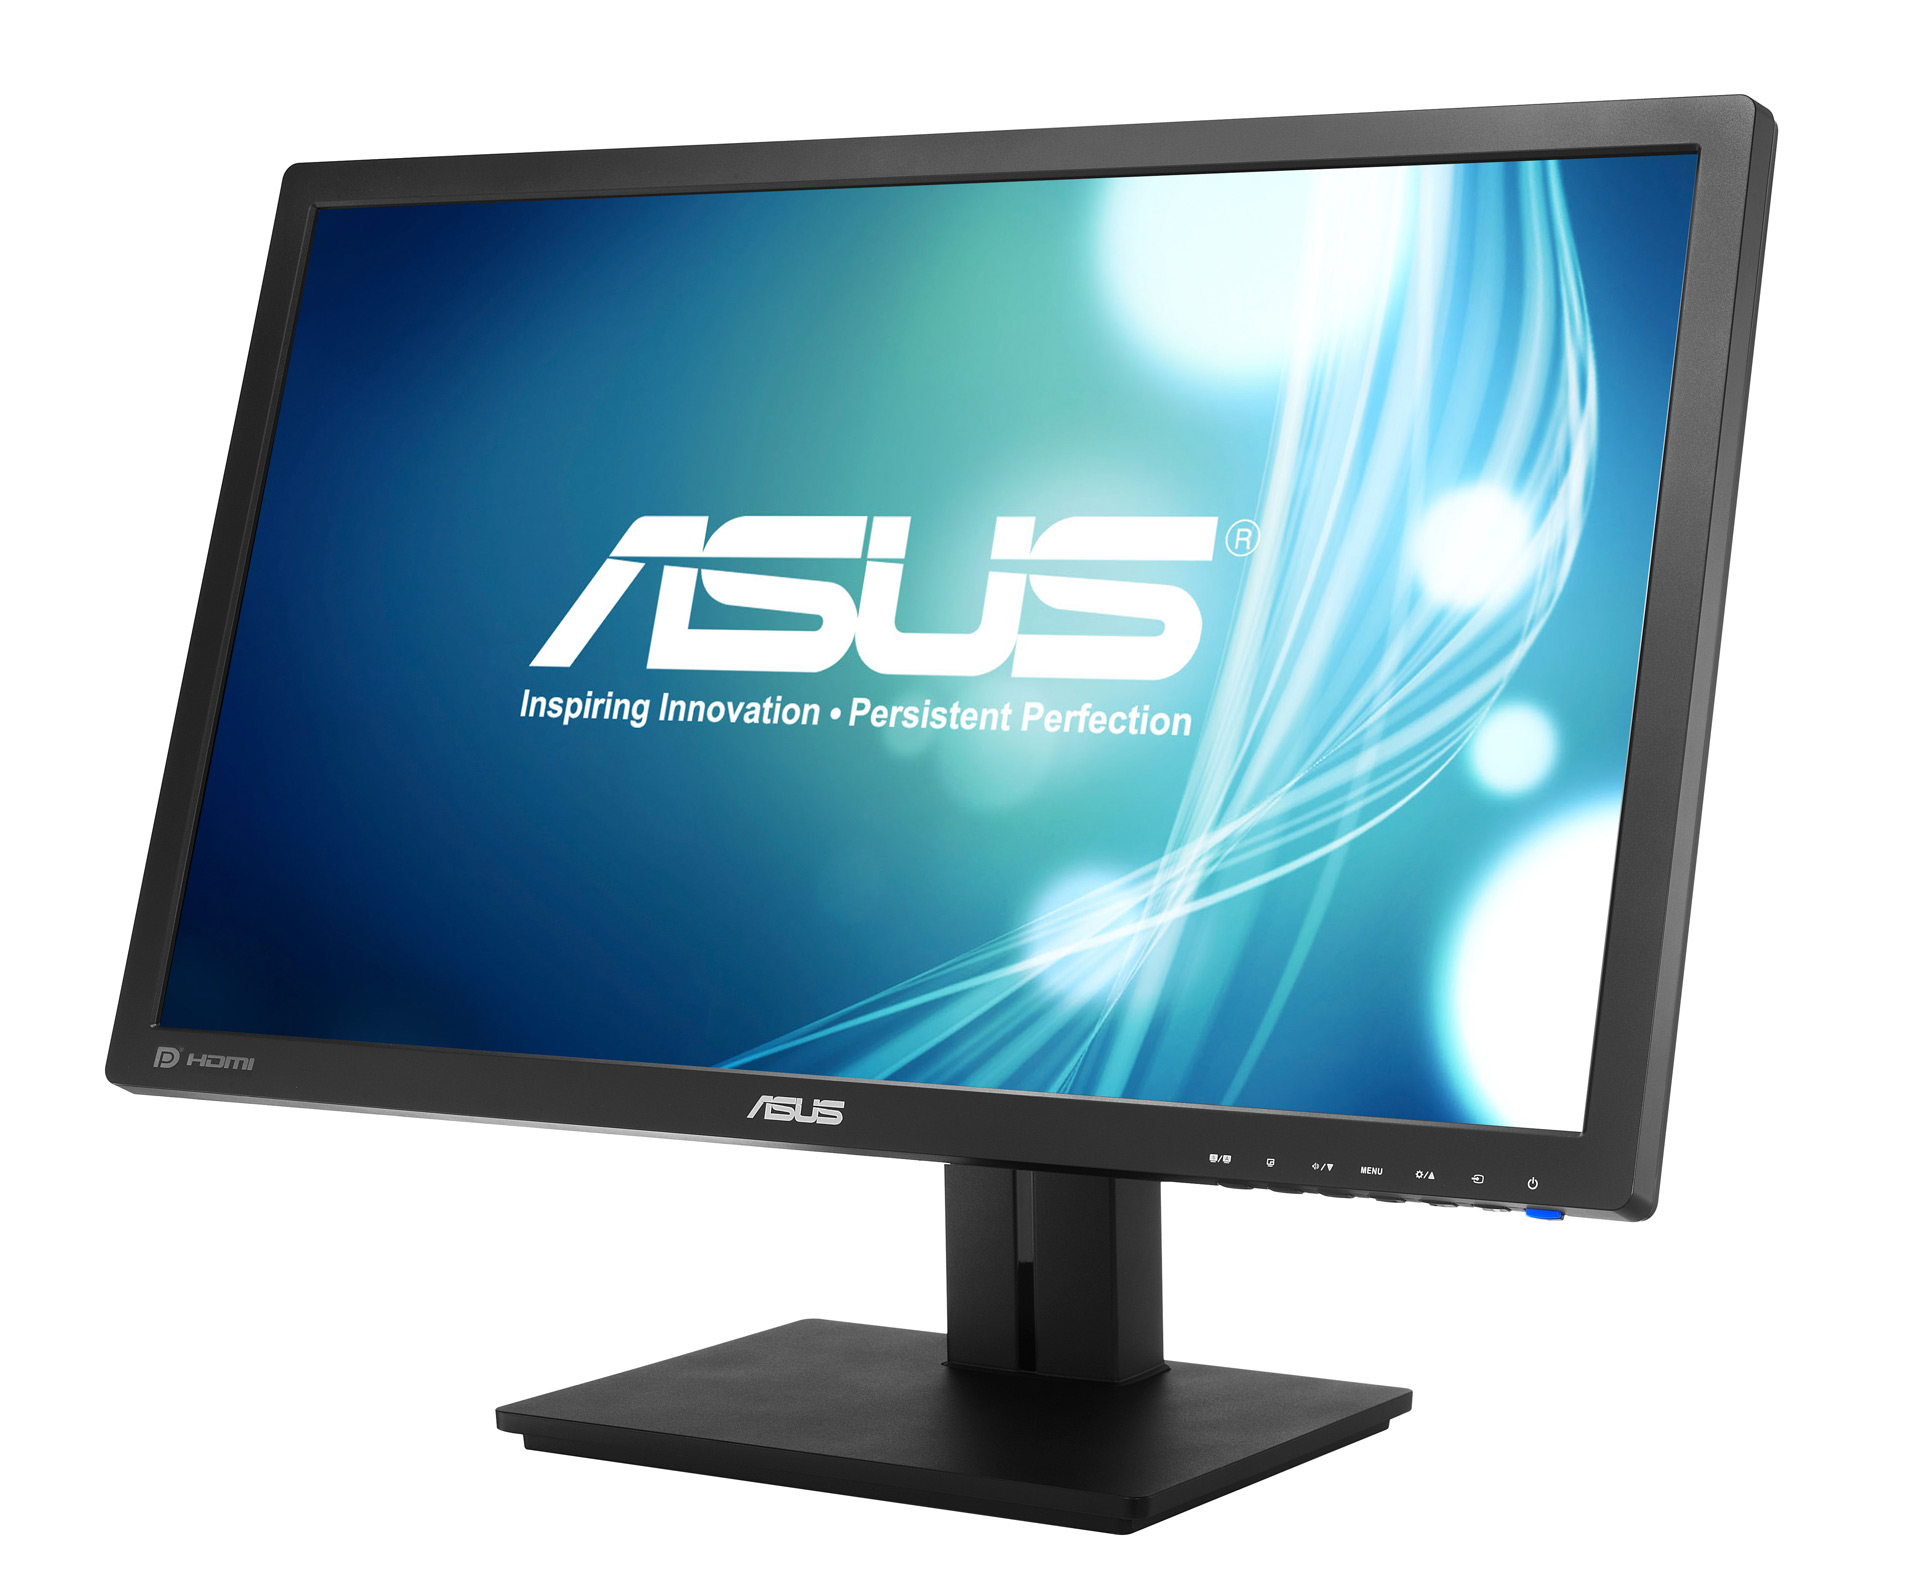 Refurbished - ASUS PB278Q 27 IPS LED Backlit Monitor 2560x1440 5ms VGA DVI HDMI Displayport